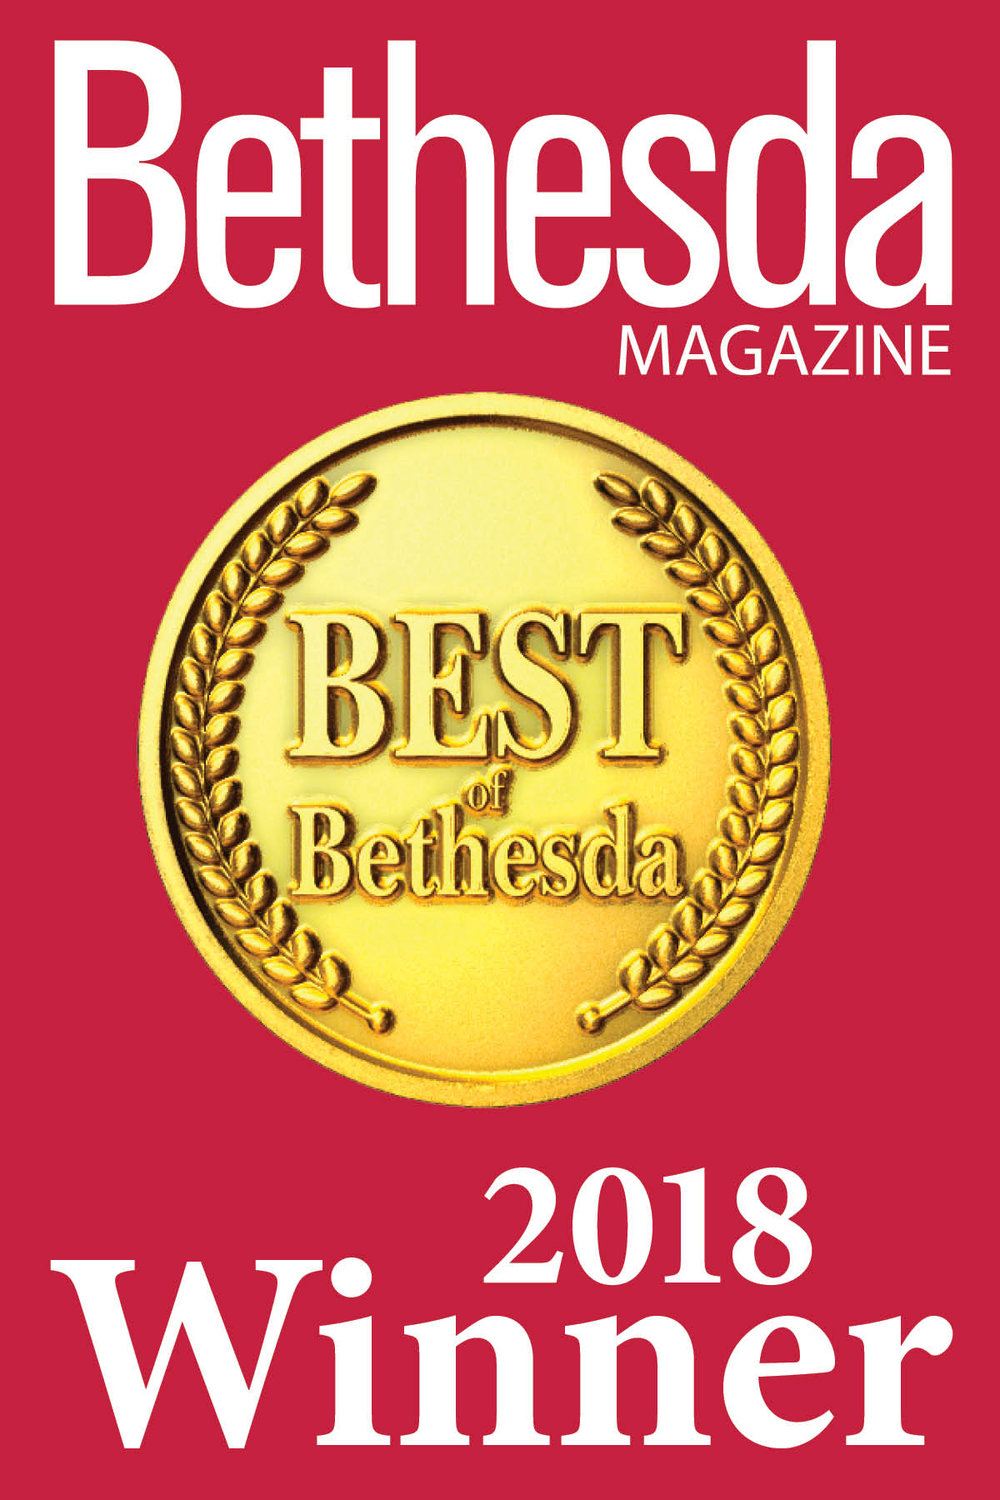 Bethesda Magazine 2018 Winner Badge.jpg